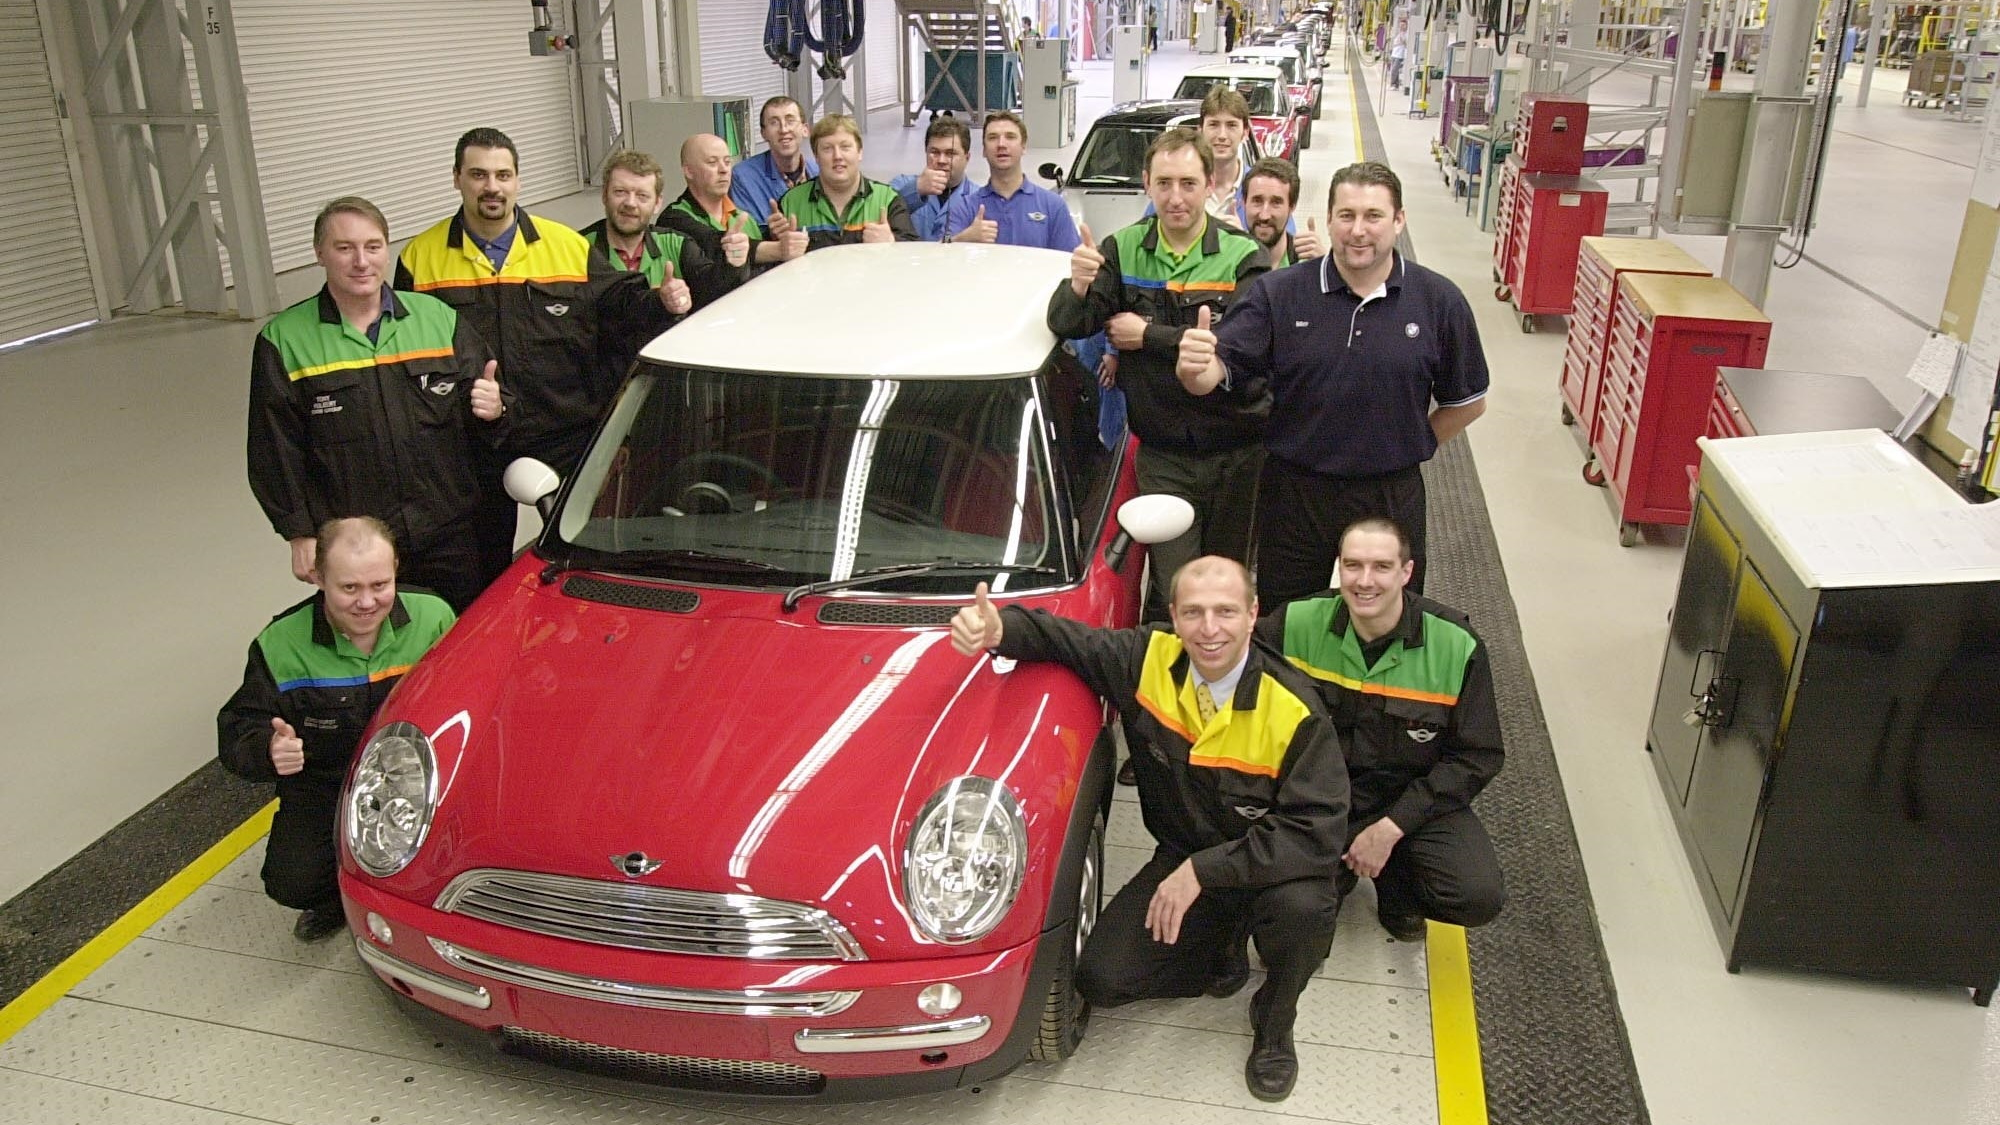 Modern-day MINI assembly at MINI Plant Oxford, England, Mar 2013 (the plant's 100th birthday)